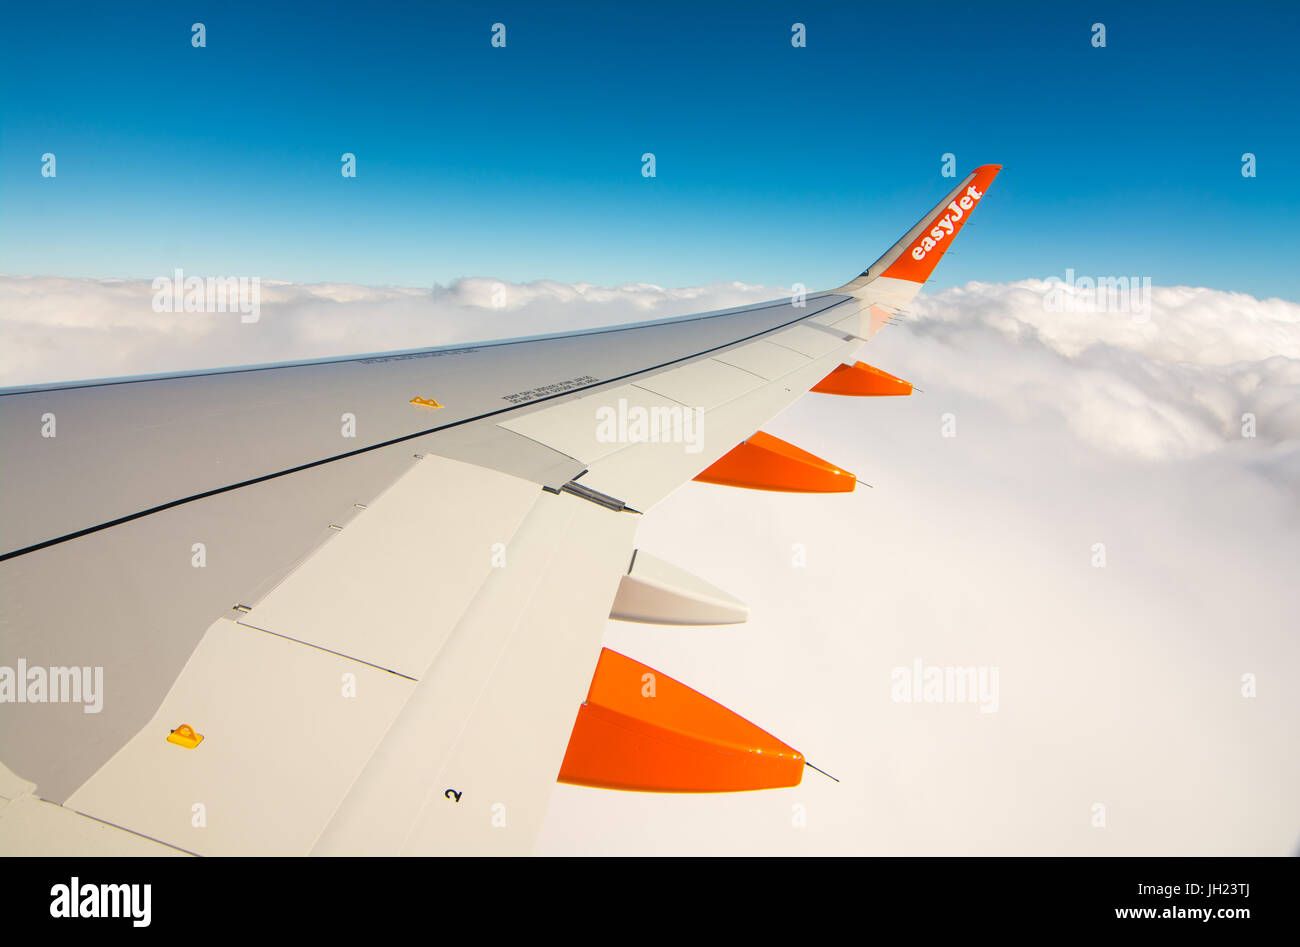 Orange and white wing on an Easyjet Airbus rising above white fluffy clouds. - Stock Image